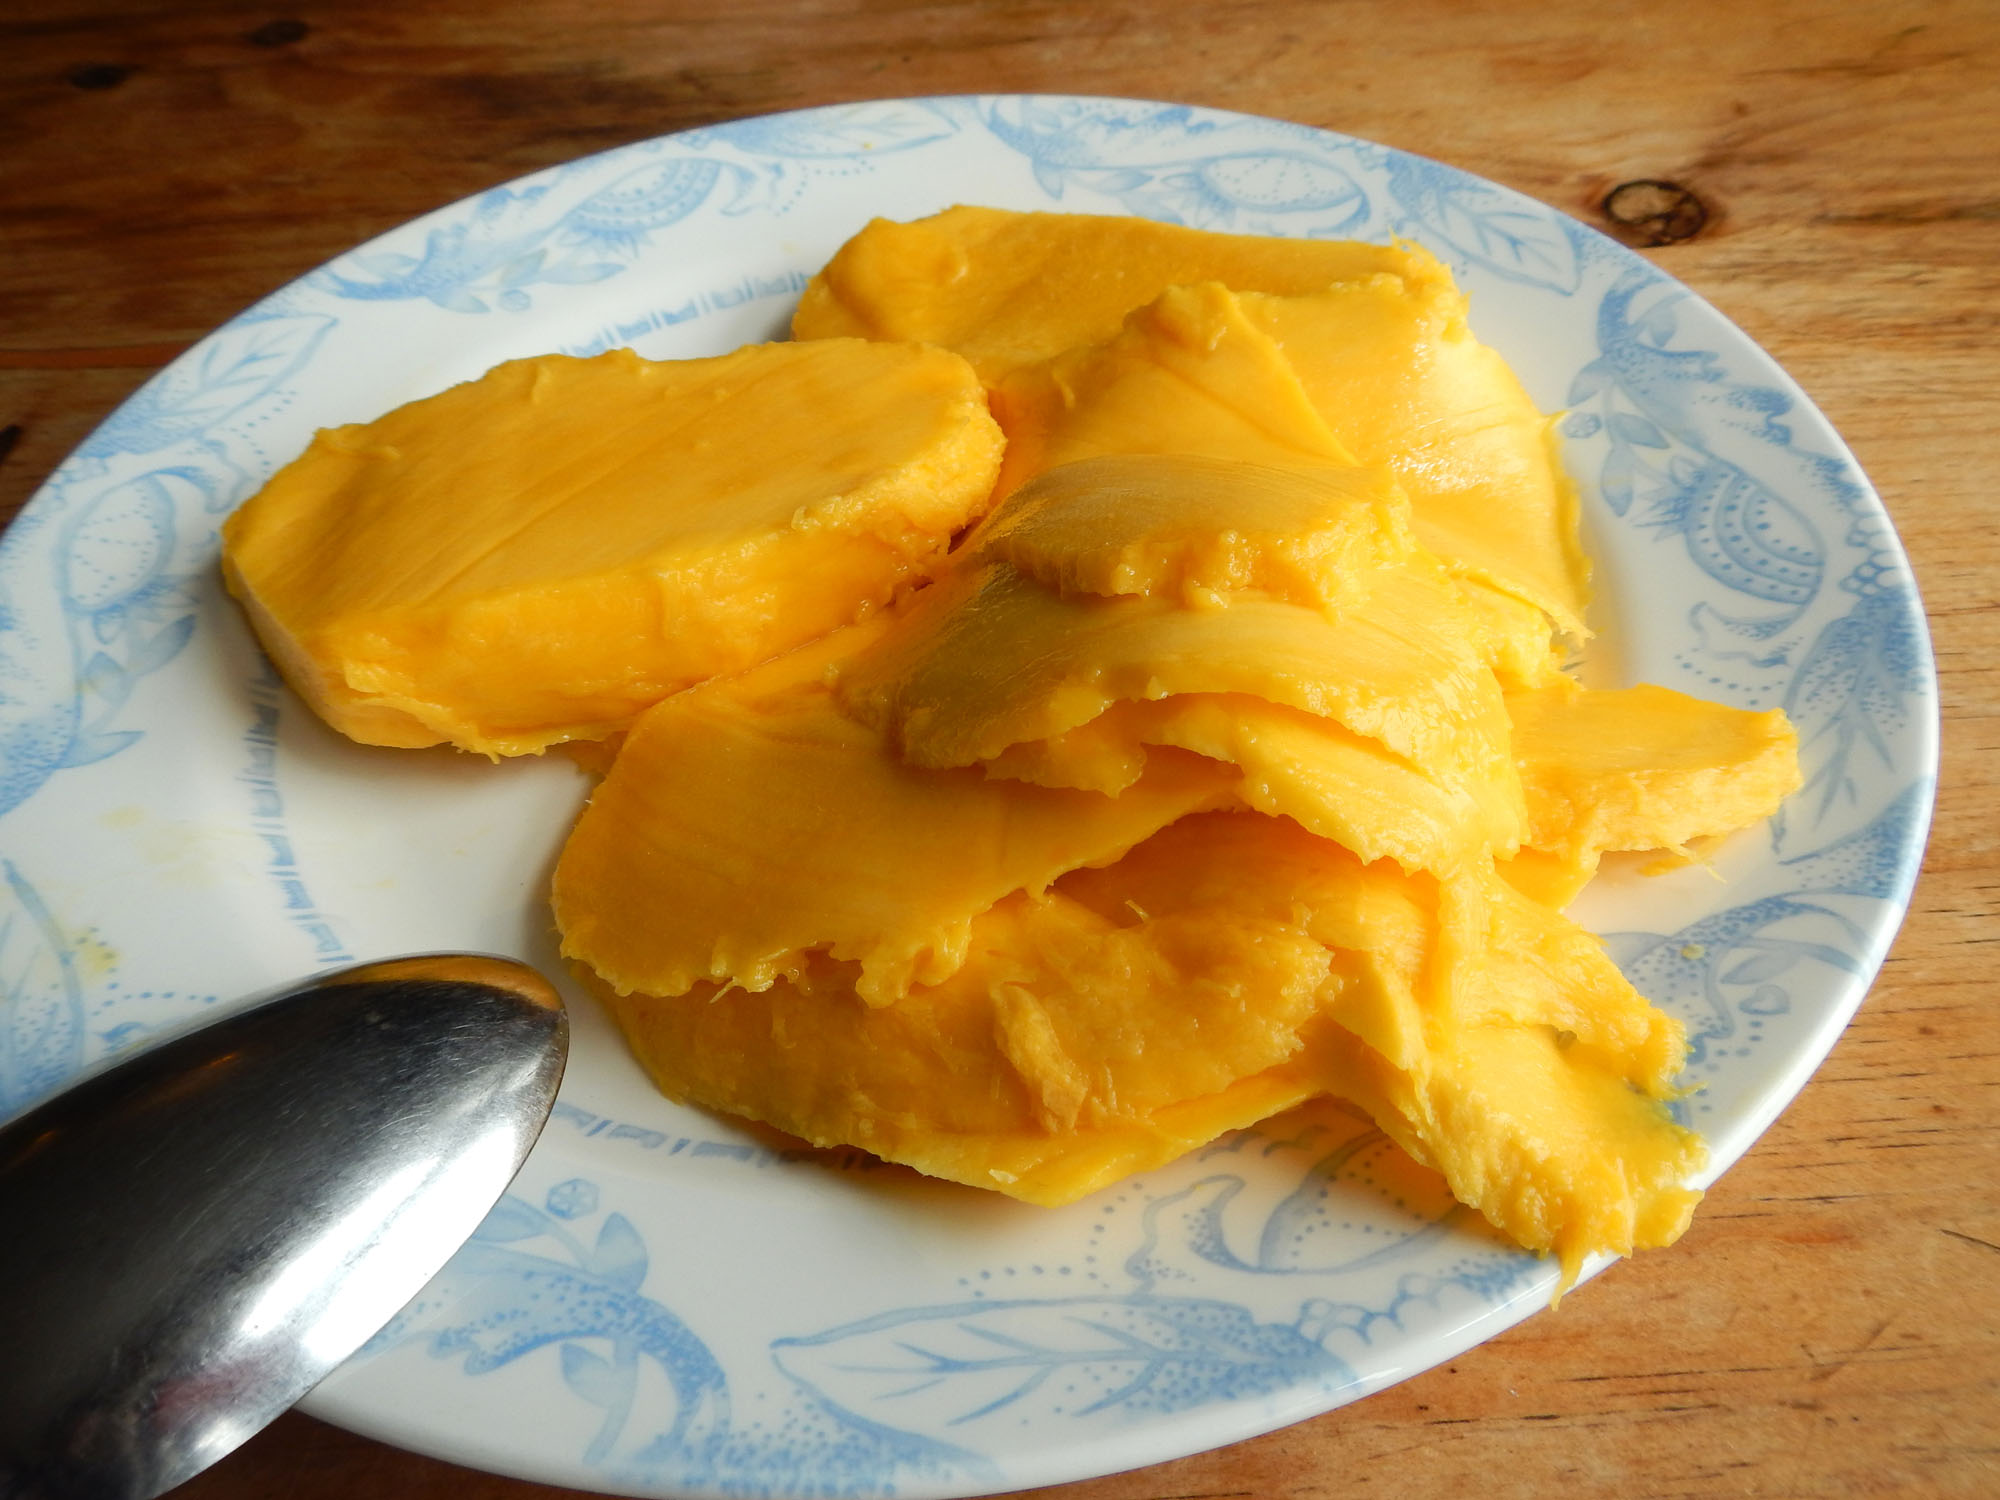 Sliced mango for mango float